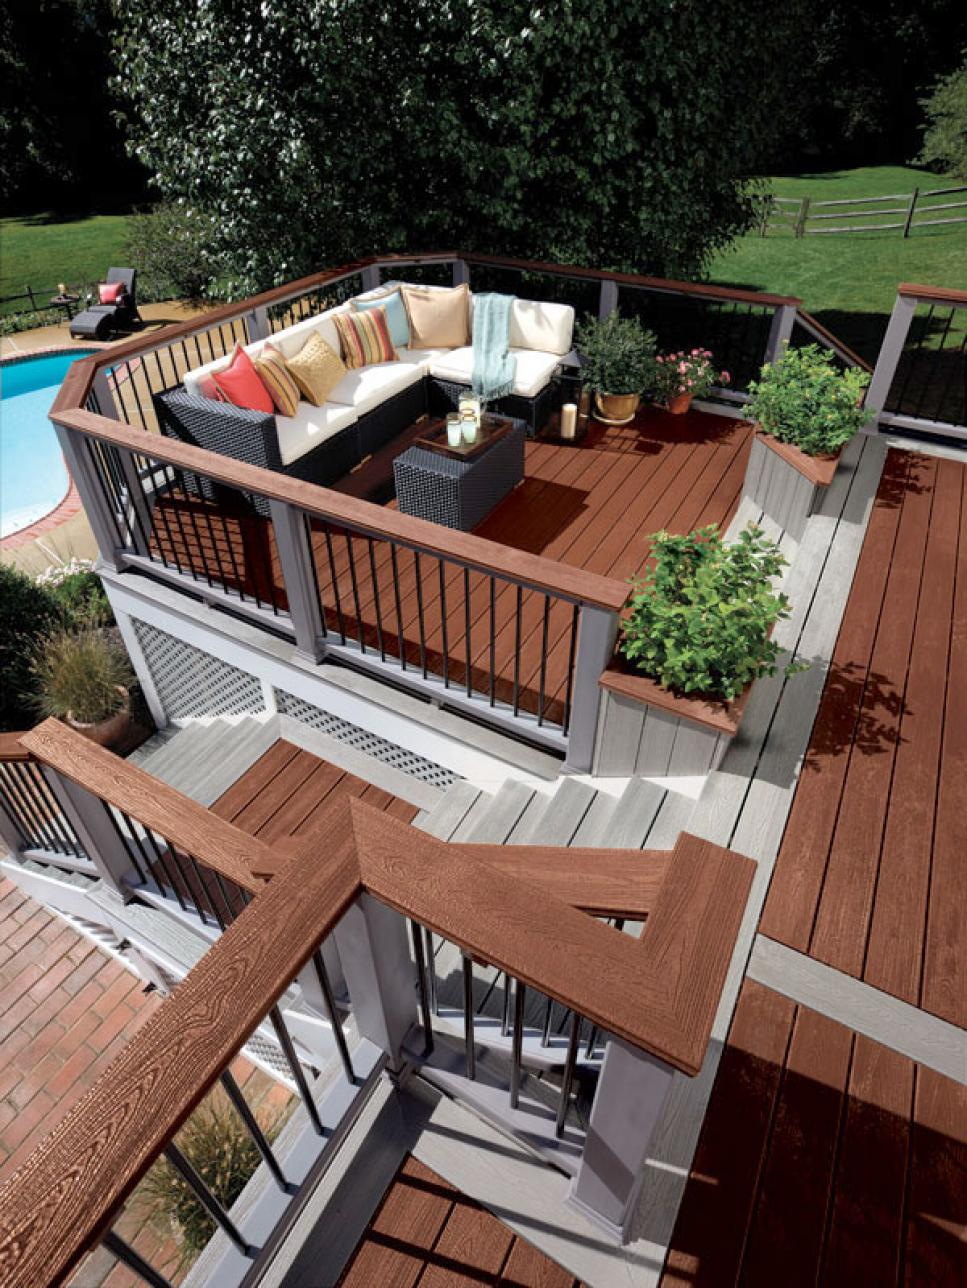 Ideas For Deck Designs deck design ideas Deck Design Ideas For The Most Suited Deck For Your House